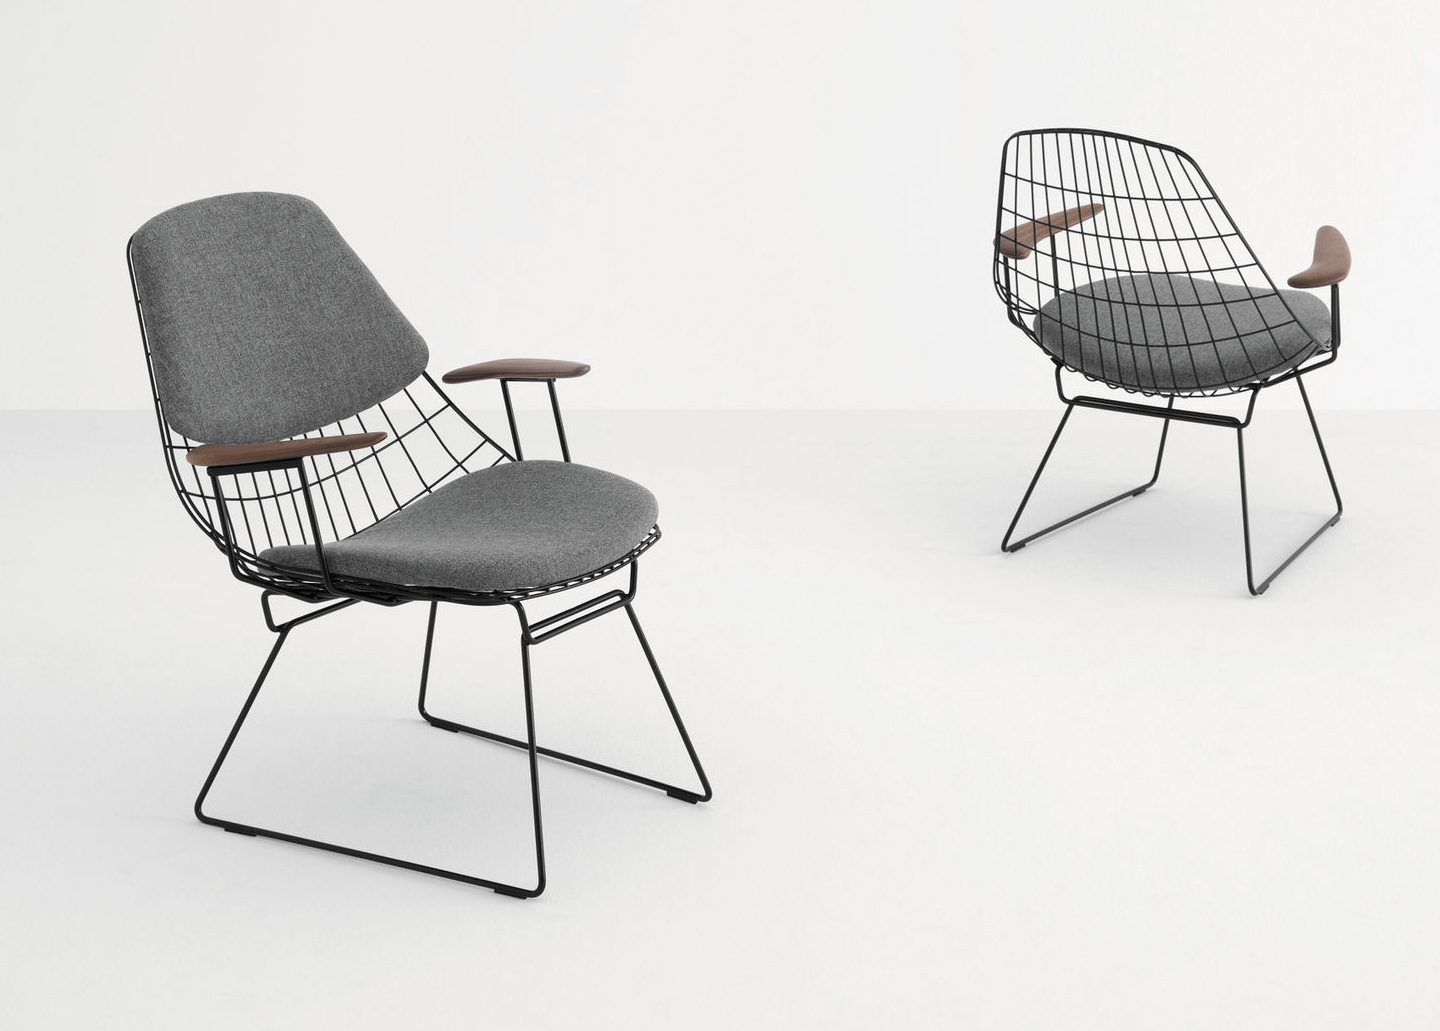 WIRE LOUNGE CHAIR FM06 BY PASTOE